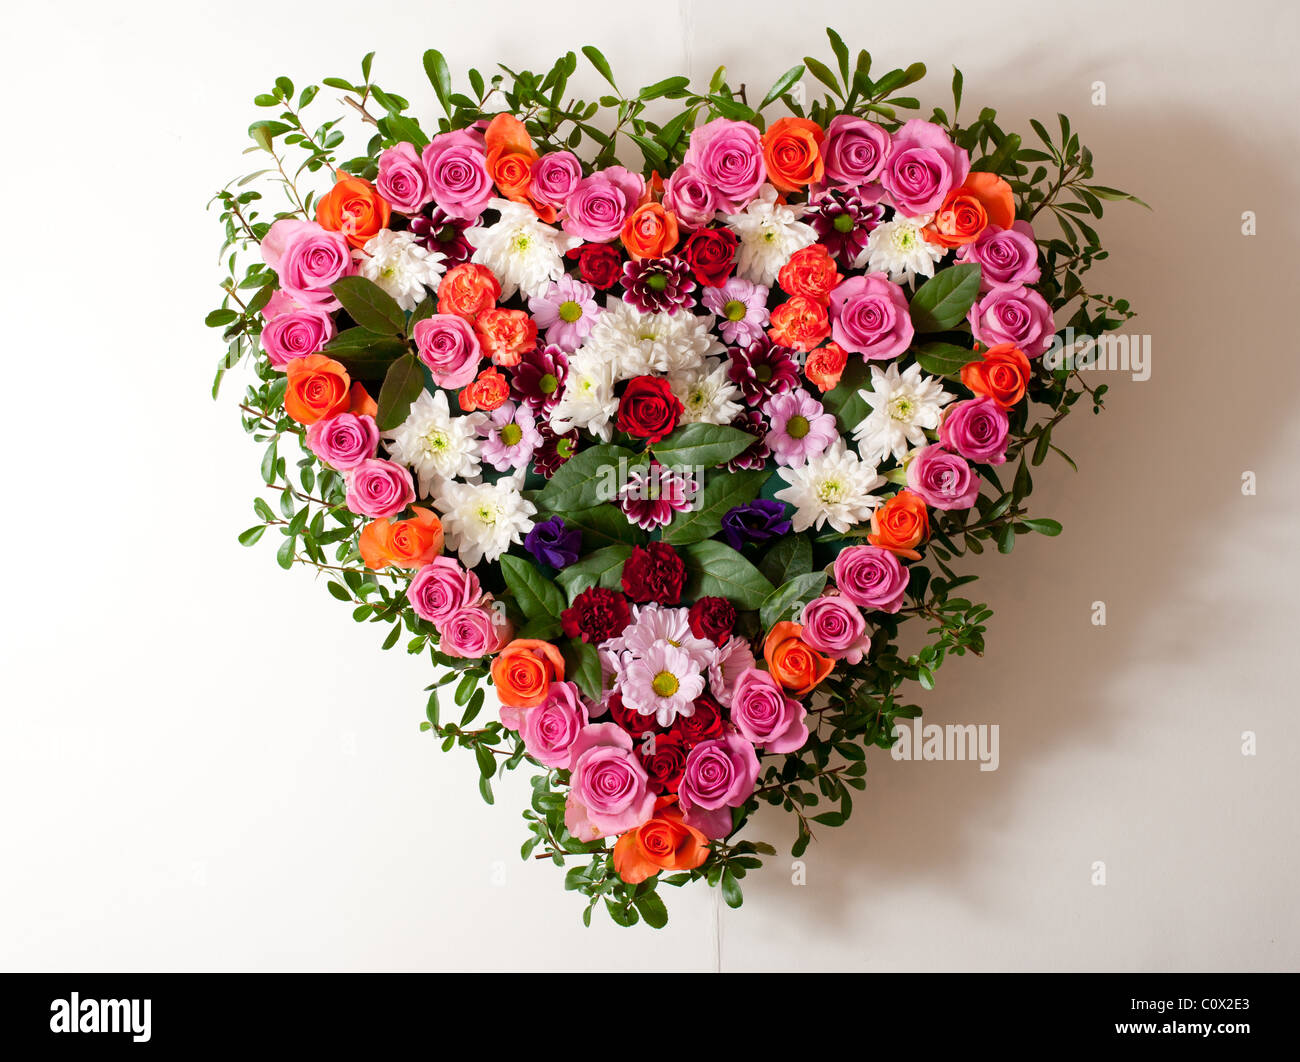 Heart shaped funeral flowers stock photo 34993451 alamy heart shaped funeral flowers izmirmasajfo